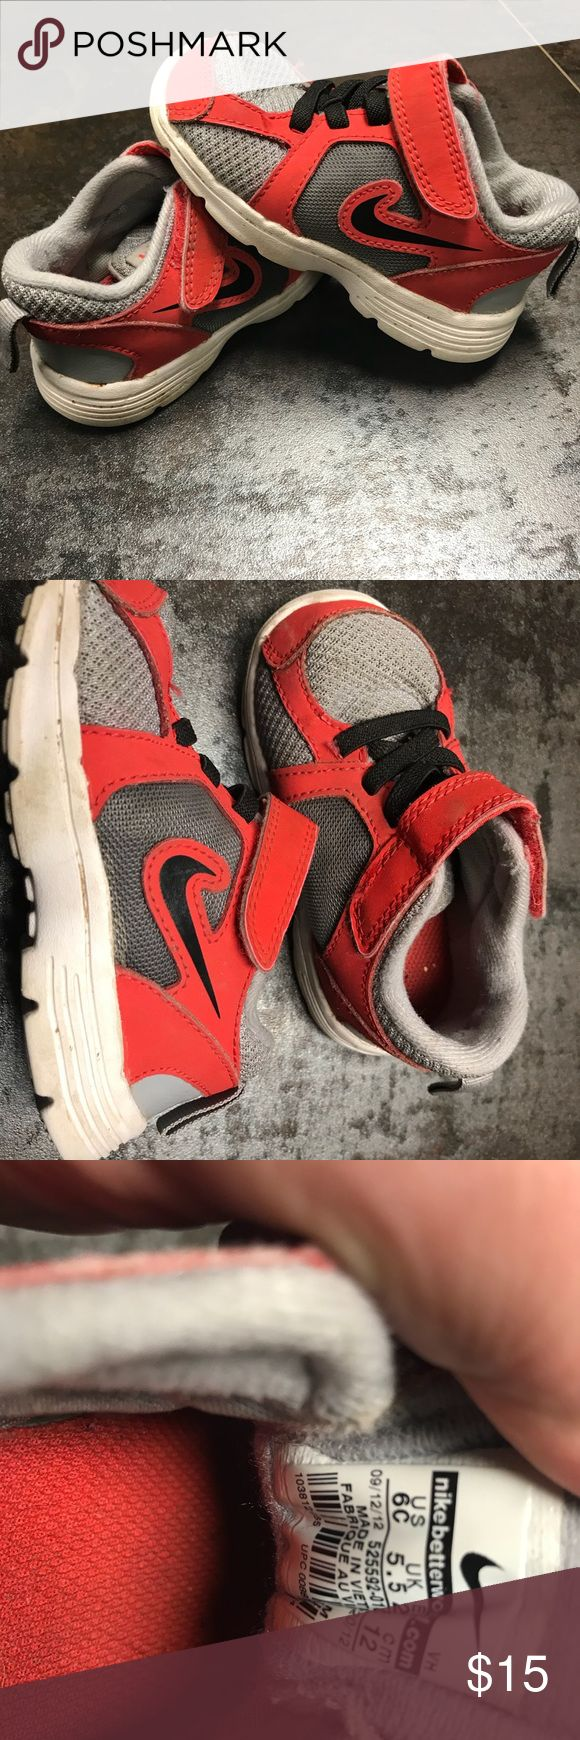 Size 6 toddlers Nike's Size 6 toddler Nike's. Red and grey. In great shape. Nike Shoes Sneakers